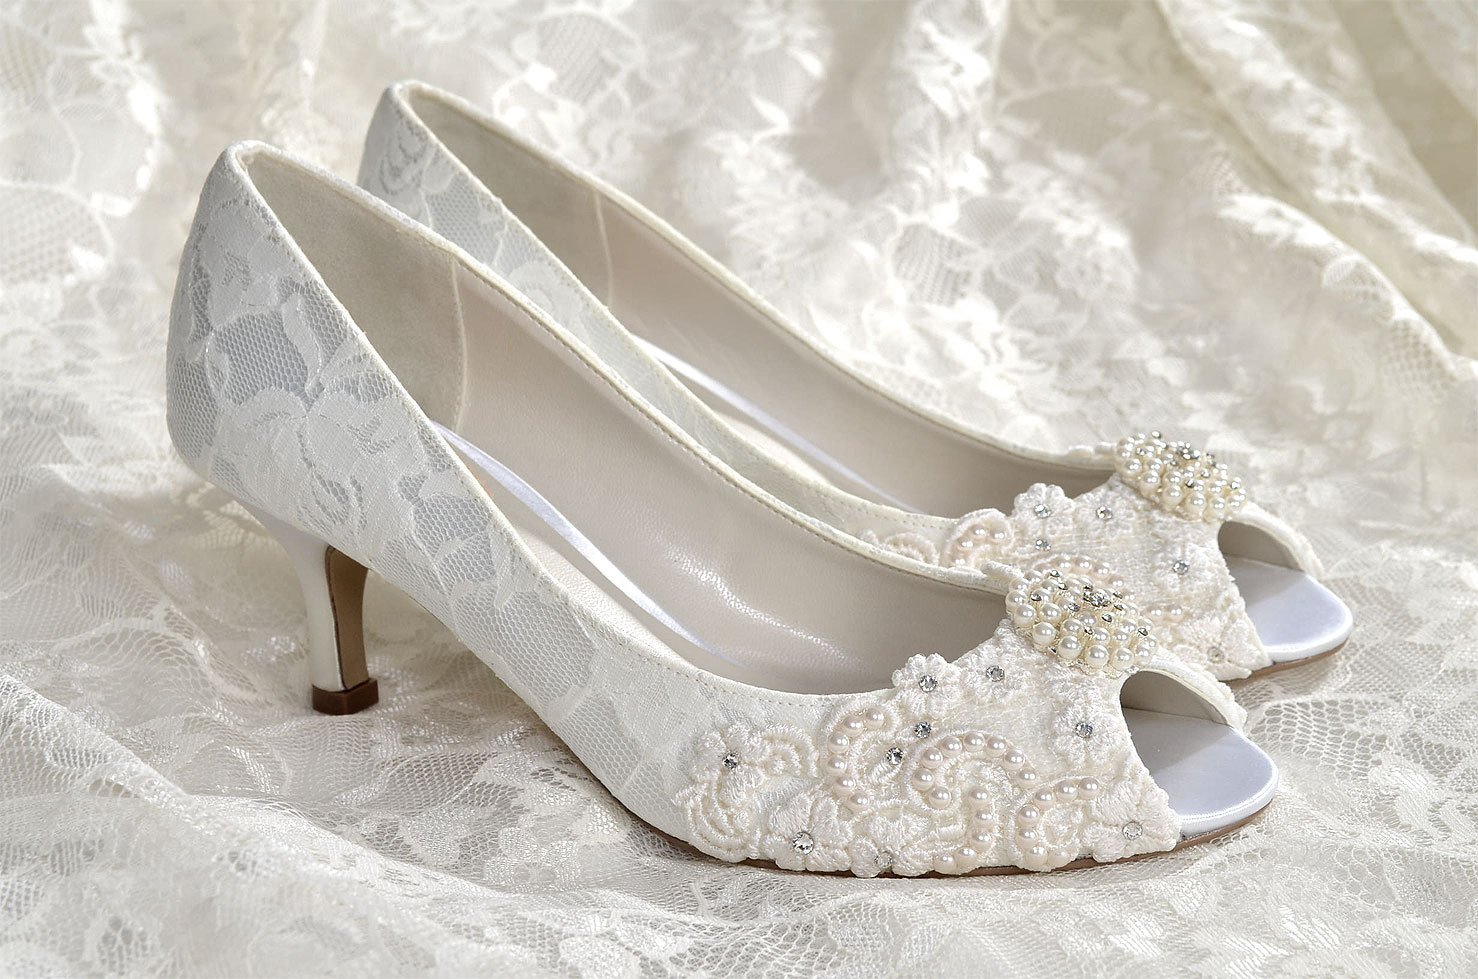 Vintage Wedding Shoes For Bride Strange History Before Buying